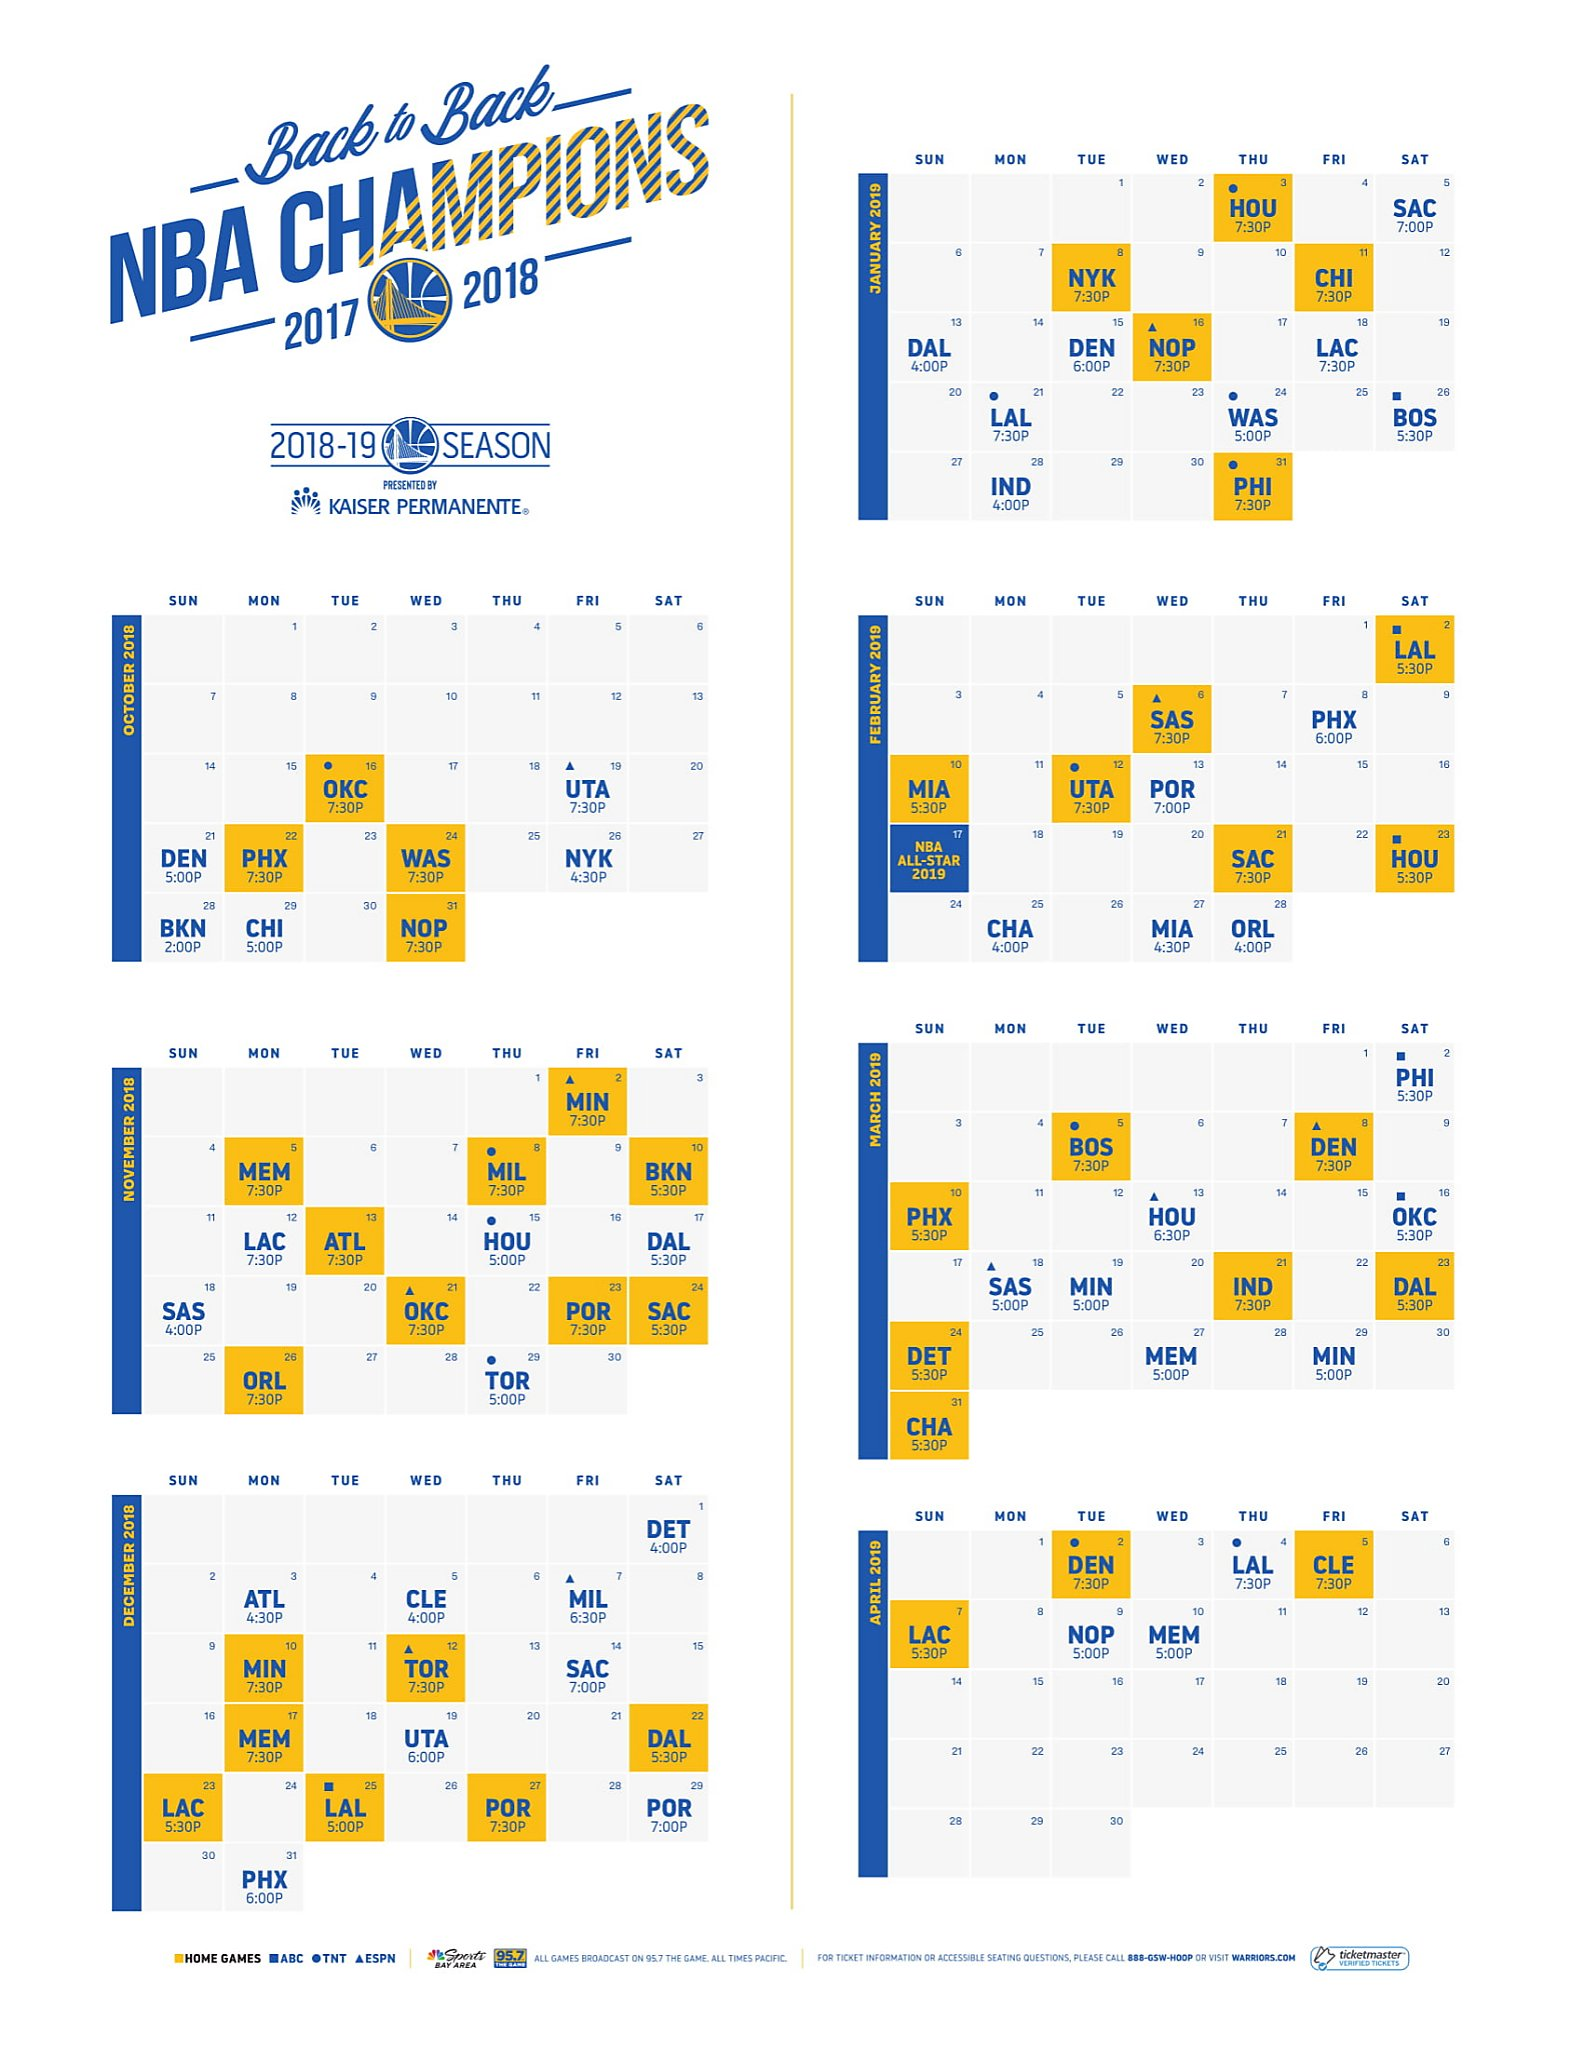 photo regarding Cleveland Cavaliers Printable Schedule identified as 5 takeaways in opposition to Warriors 2018-19 agenda -